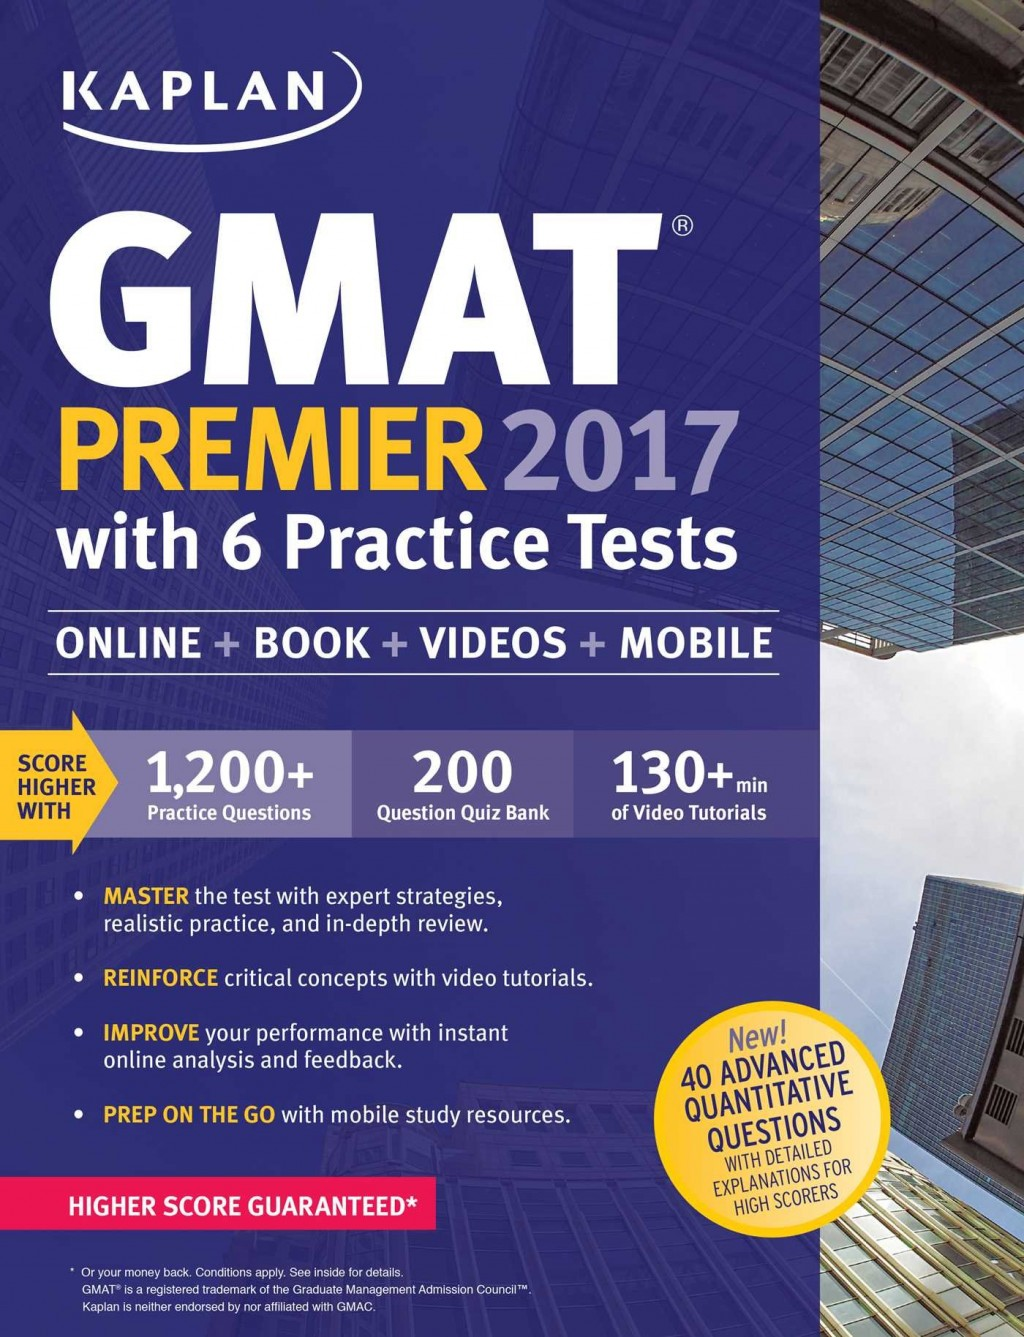 019 Essay Example Gmat Premier With Practice Tests Online Book Videos Mobile Kaplan Test Prep Hires Archaicawful Score Awa Range 5 Large